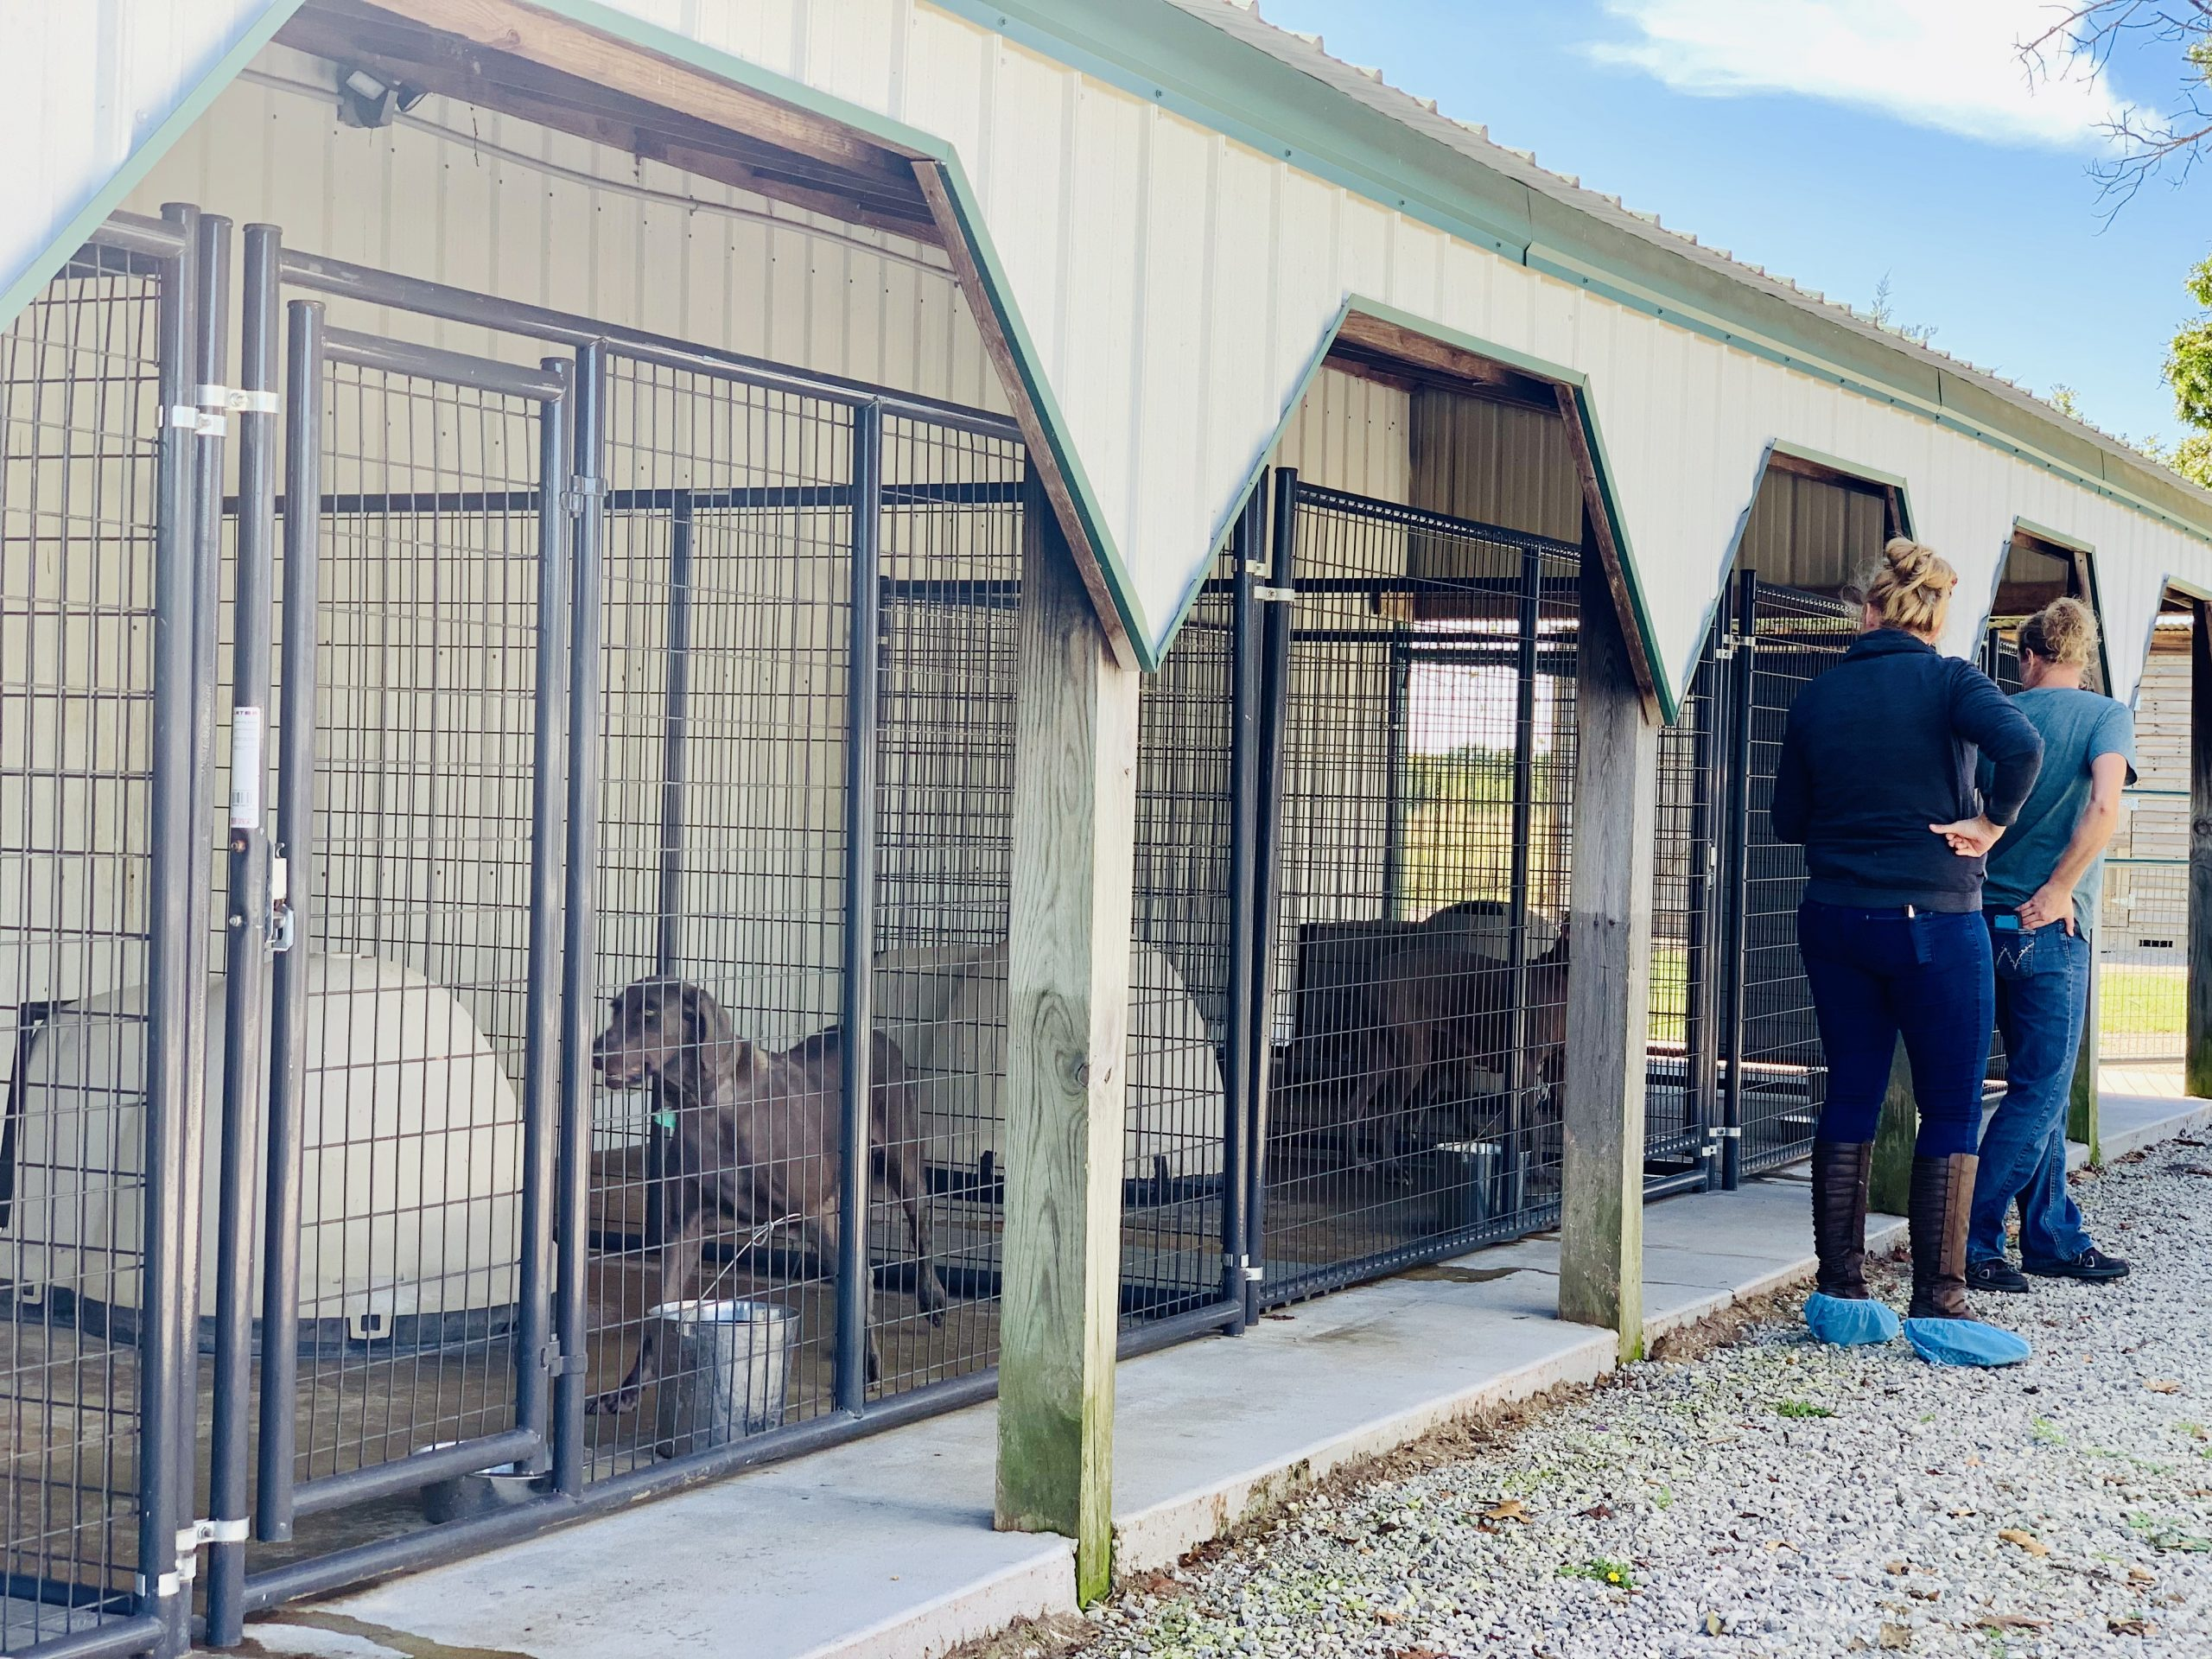 Another view of Cindy's kennel